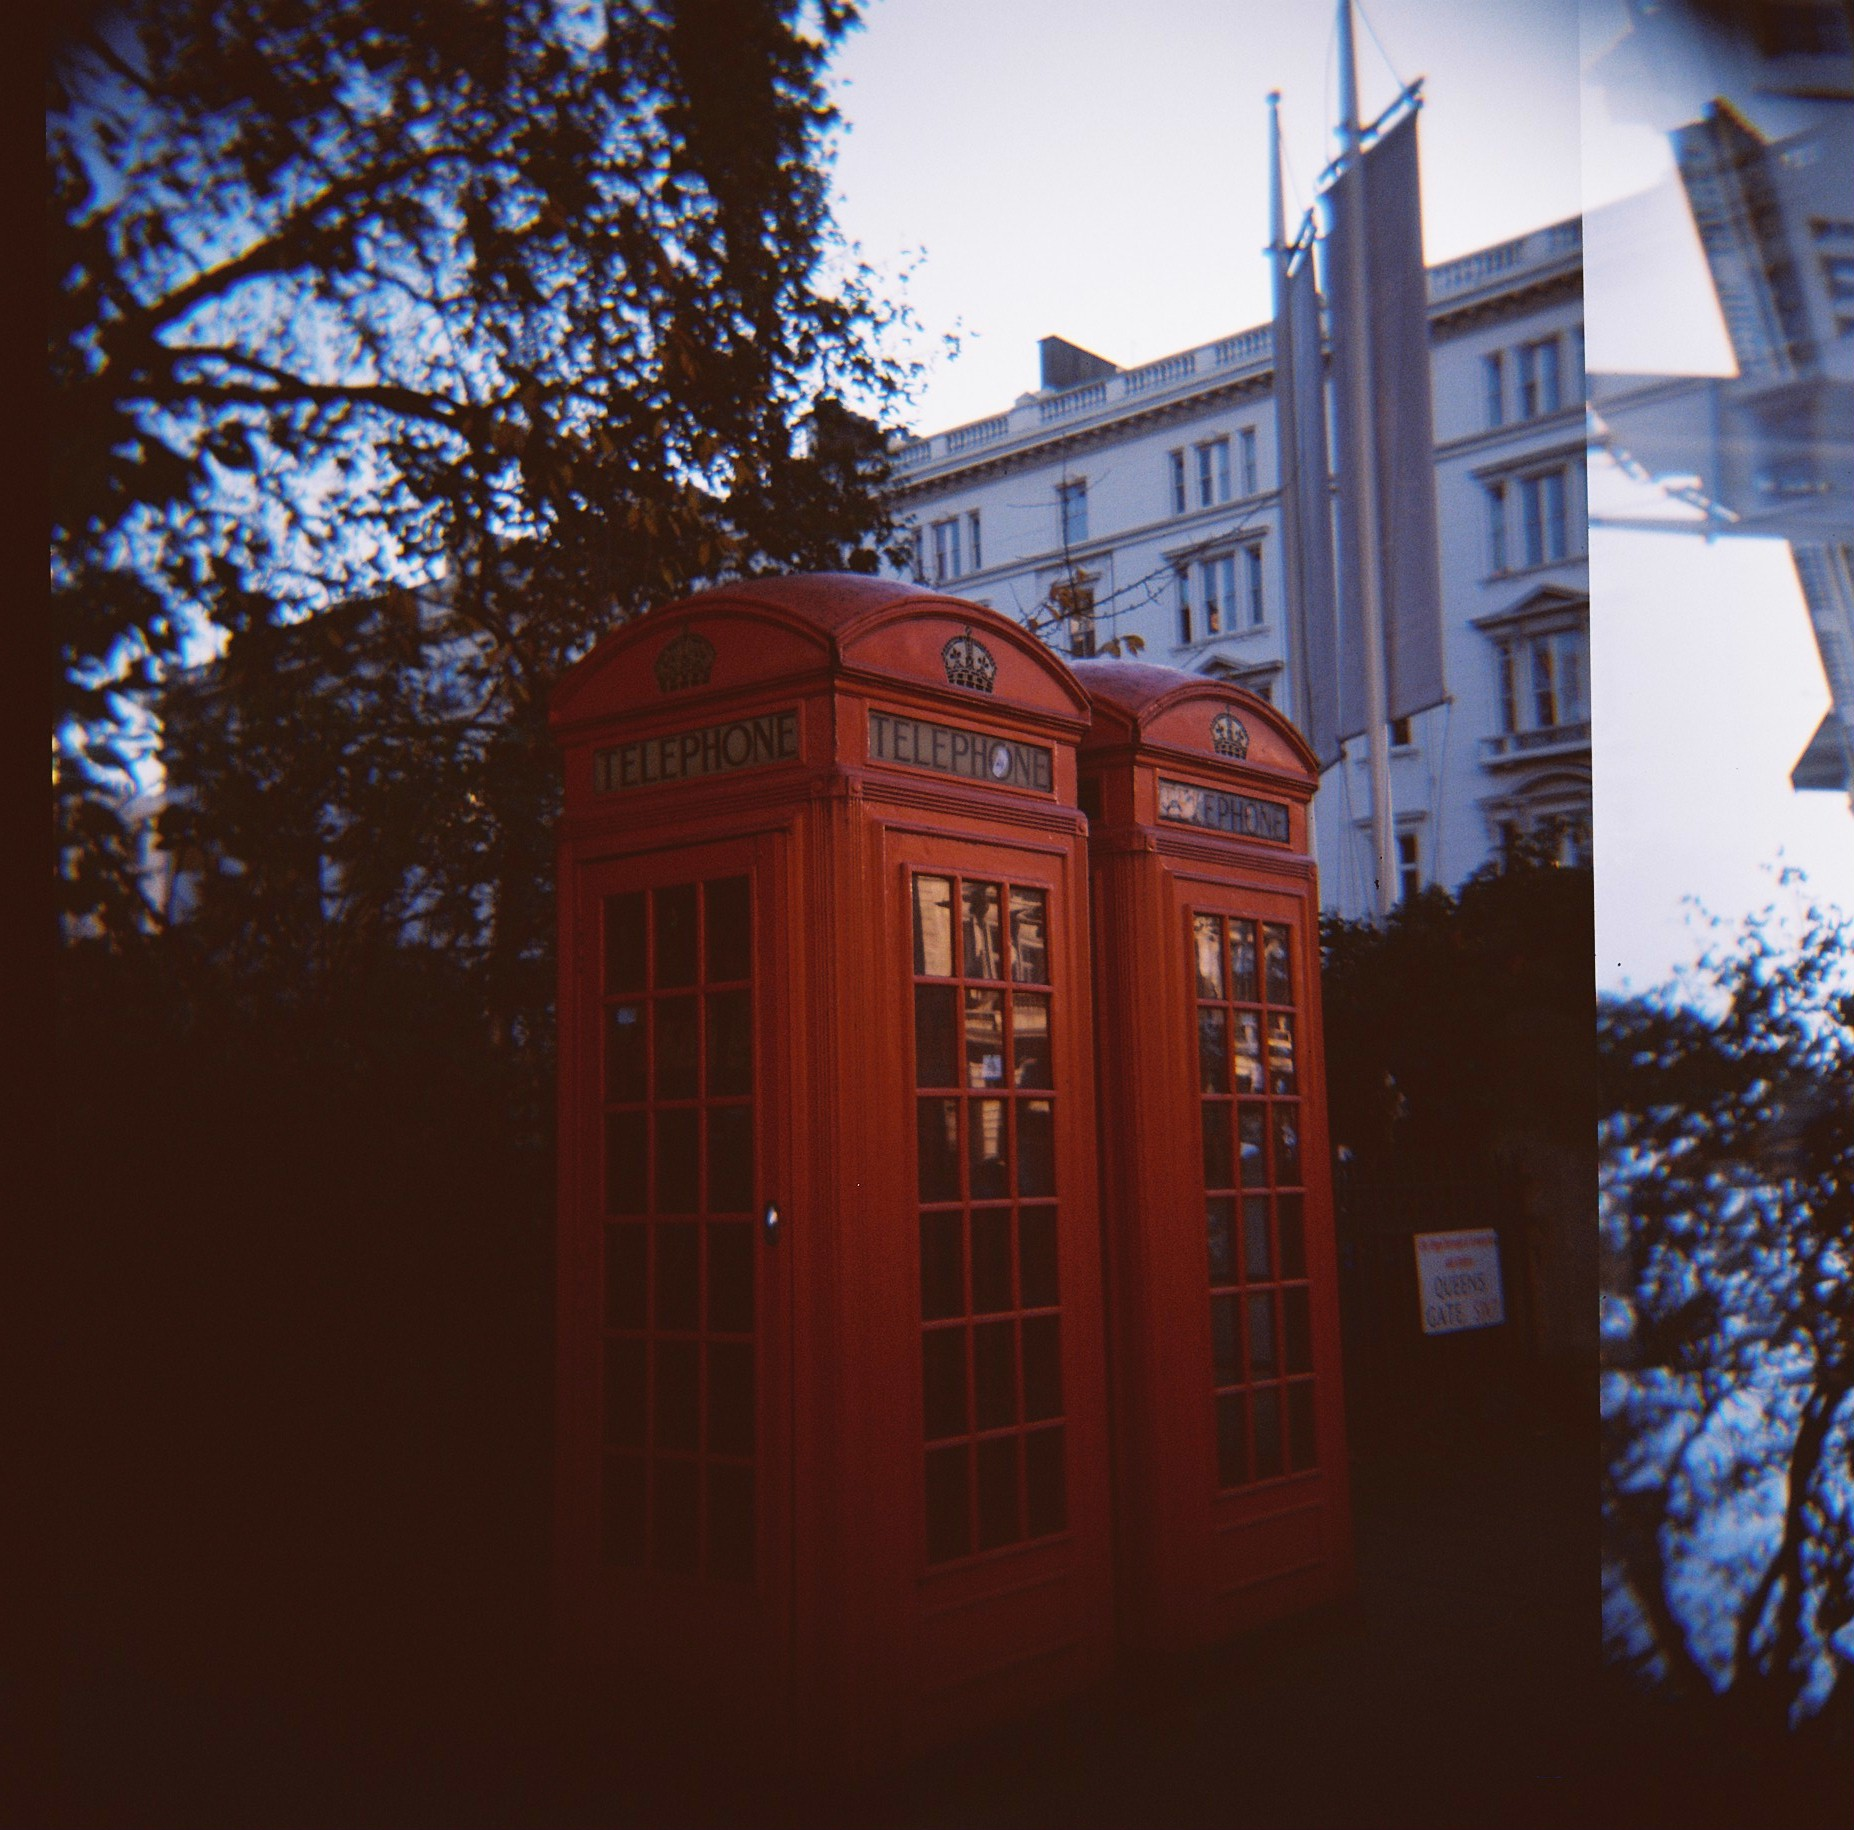 Telephone_Booth(DeenaDanielle)